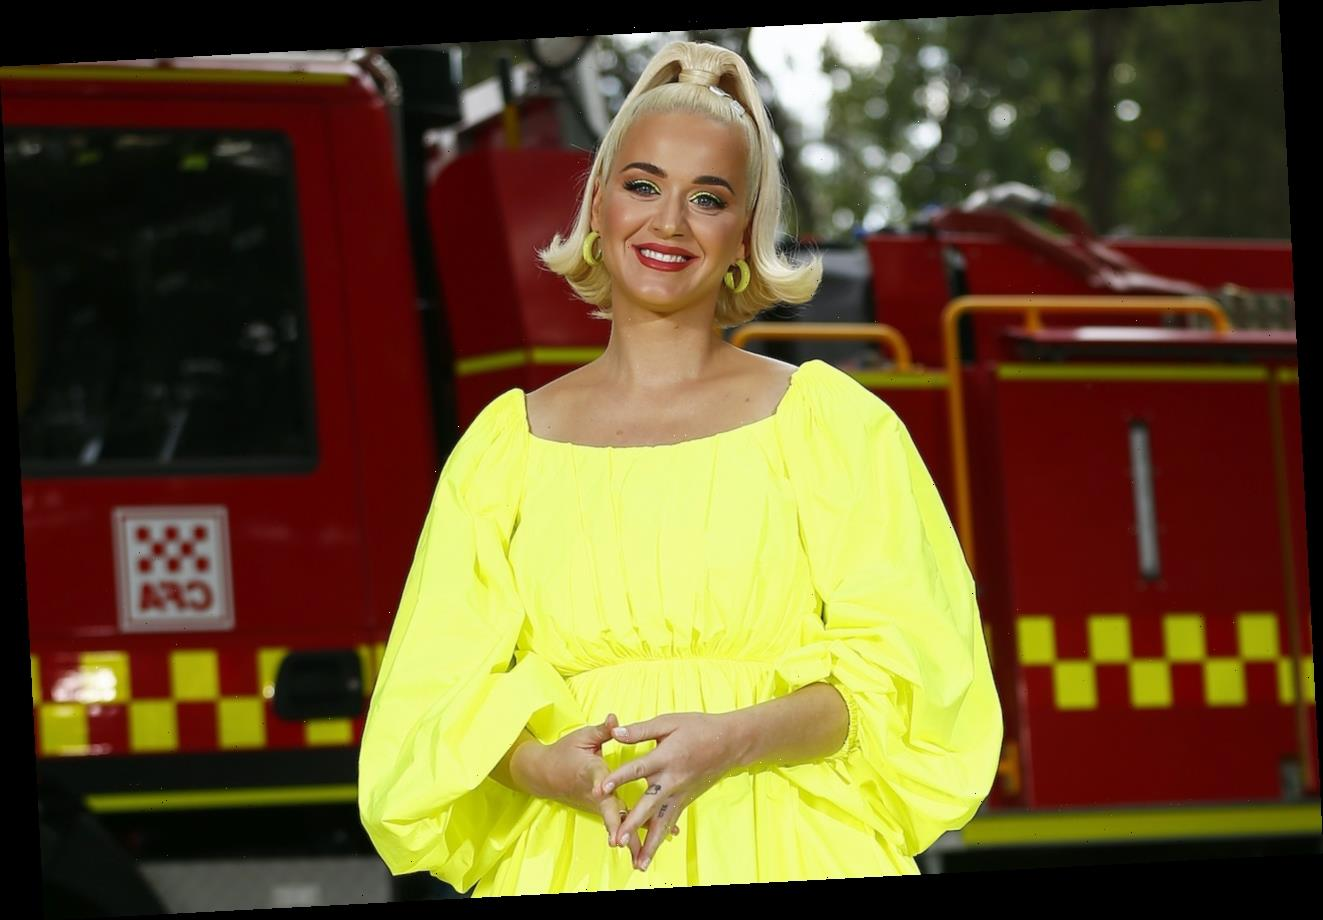 Katy Perry Called the First 6 Weeks After Her Daughter Daisy's Birth a 'Roller Coaster'